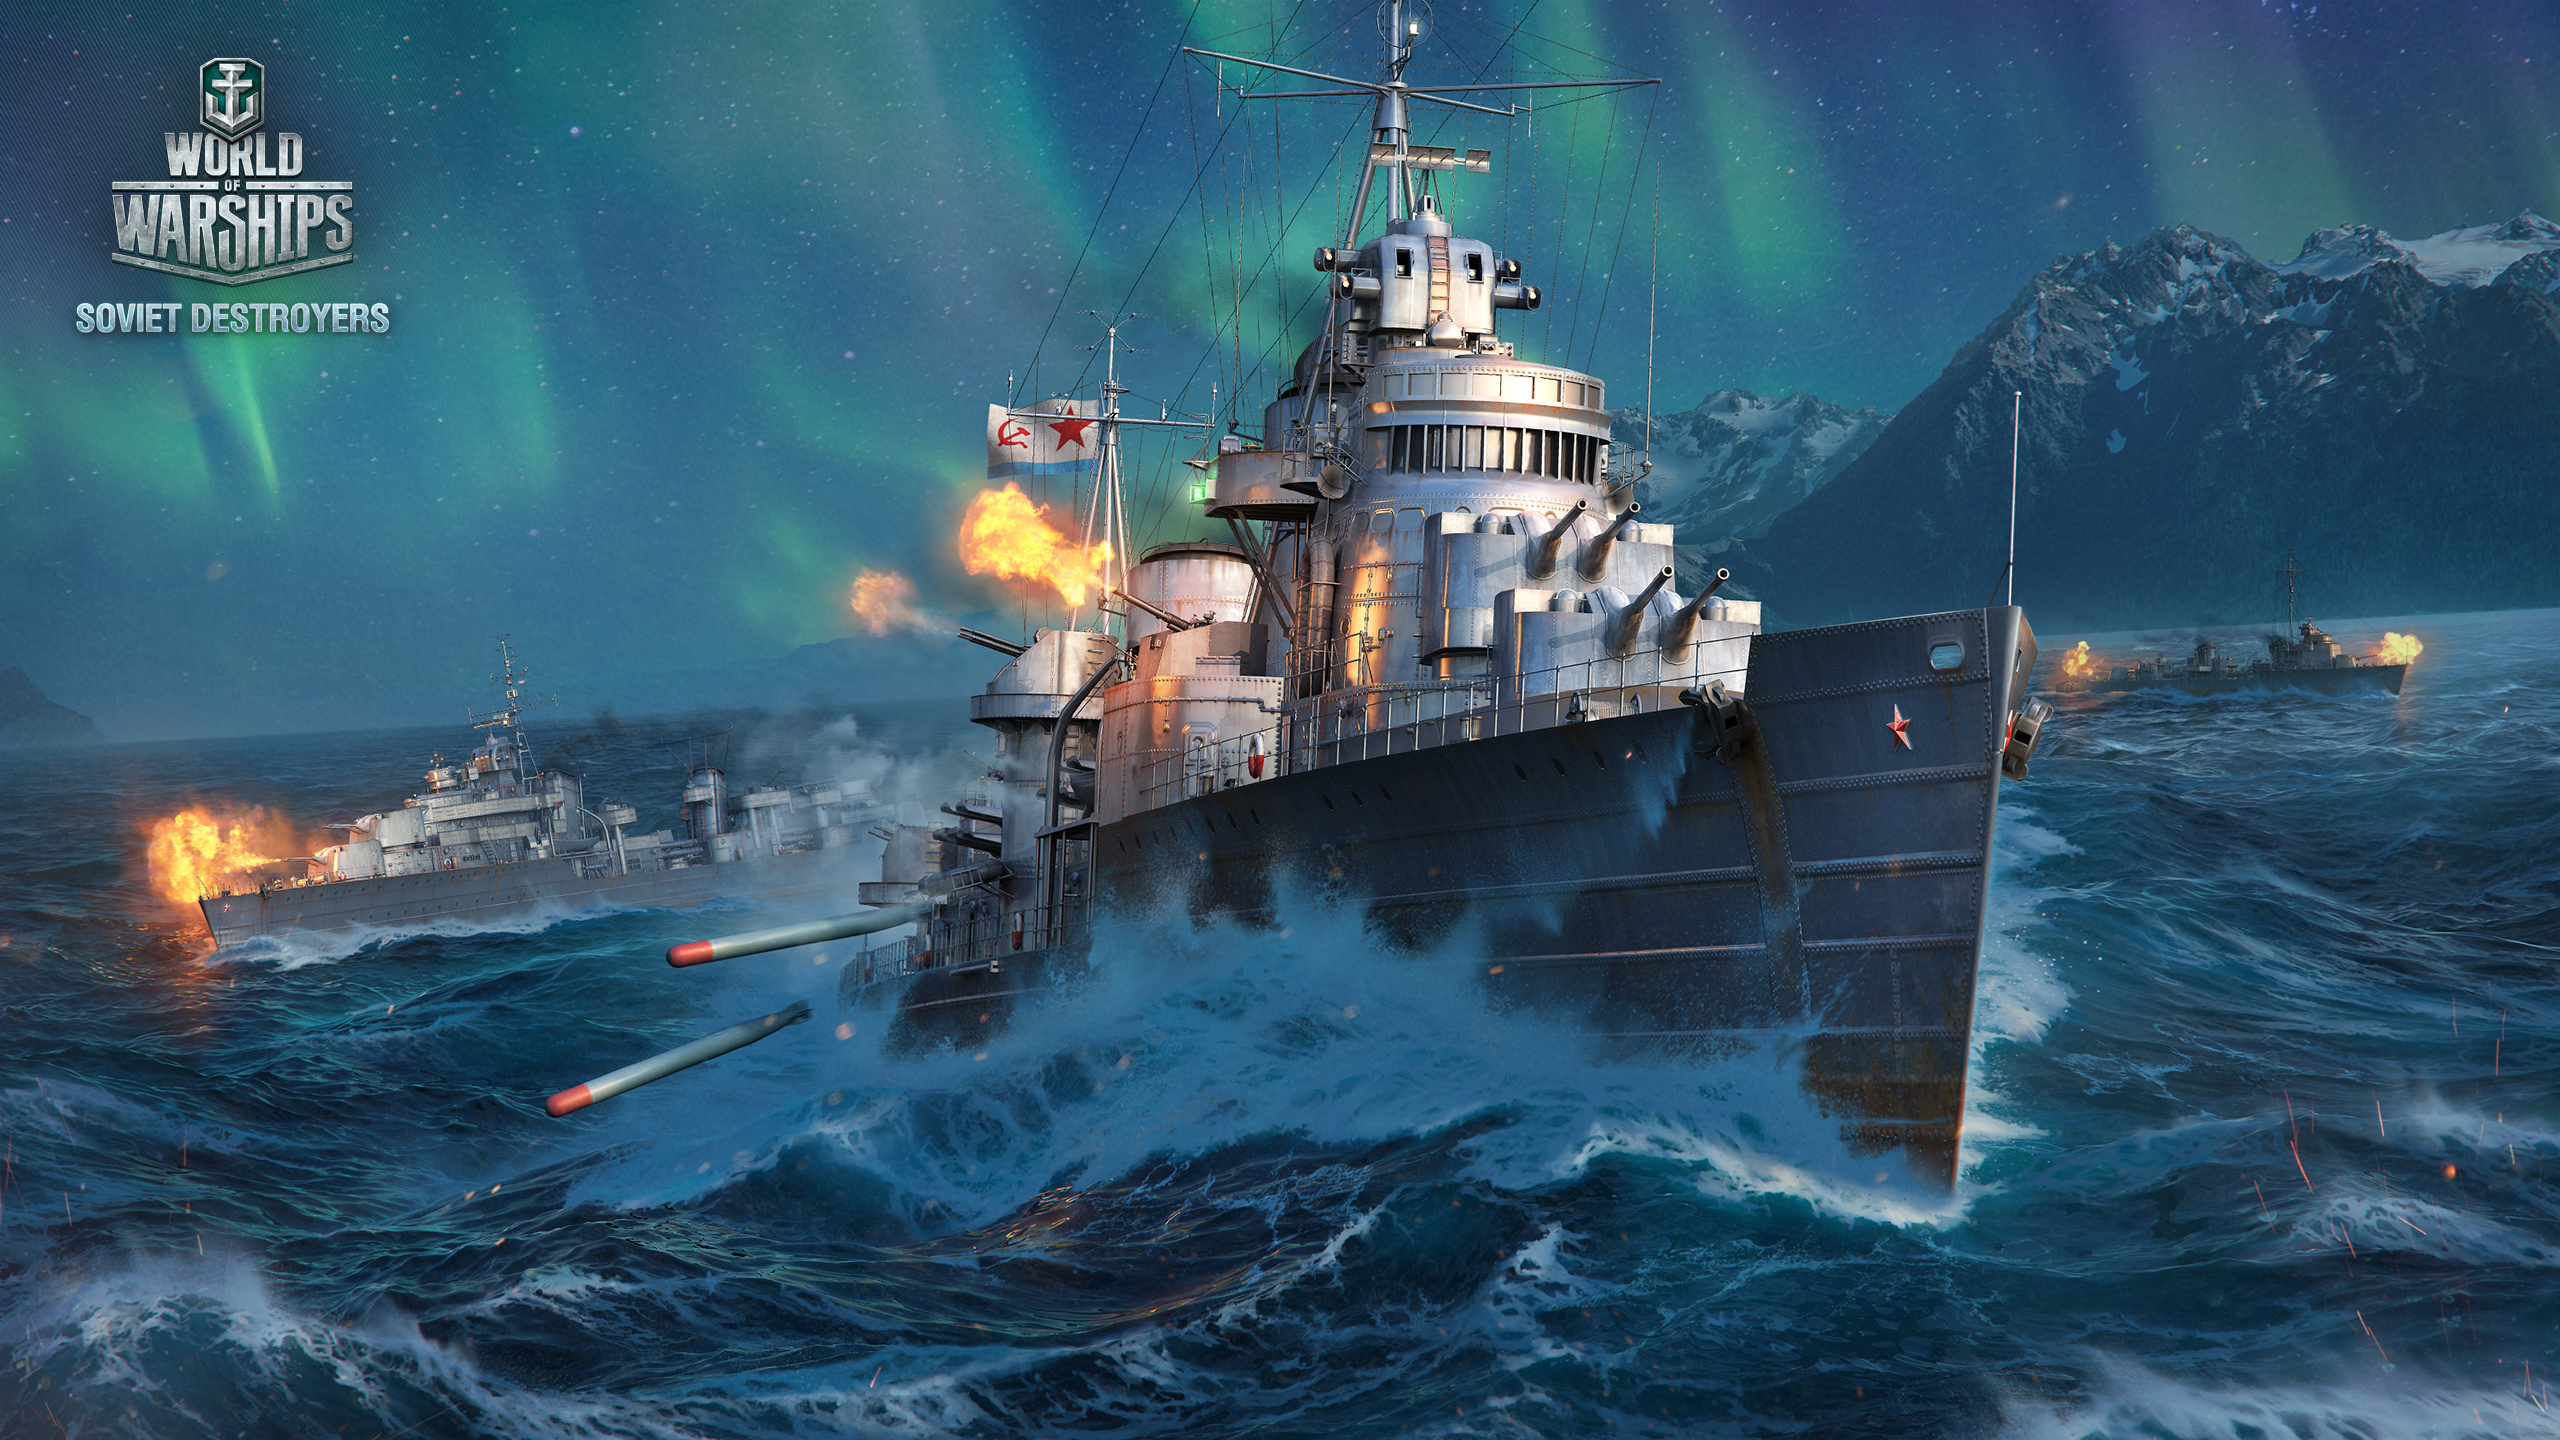 World Of Warships Wallpaper: World Of Warships Wallpapers Images Photos Pictures